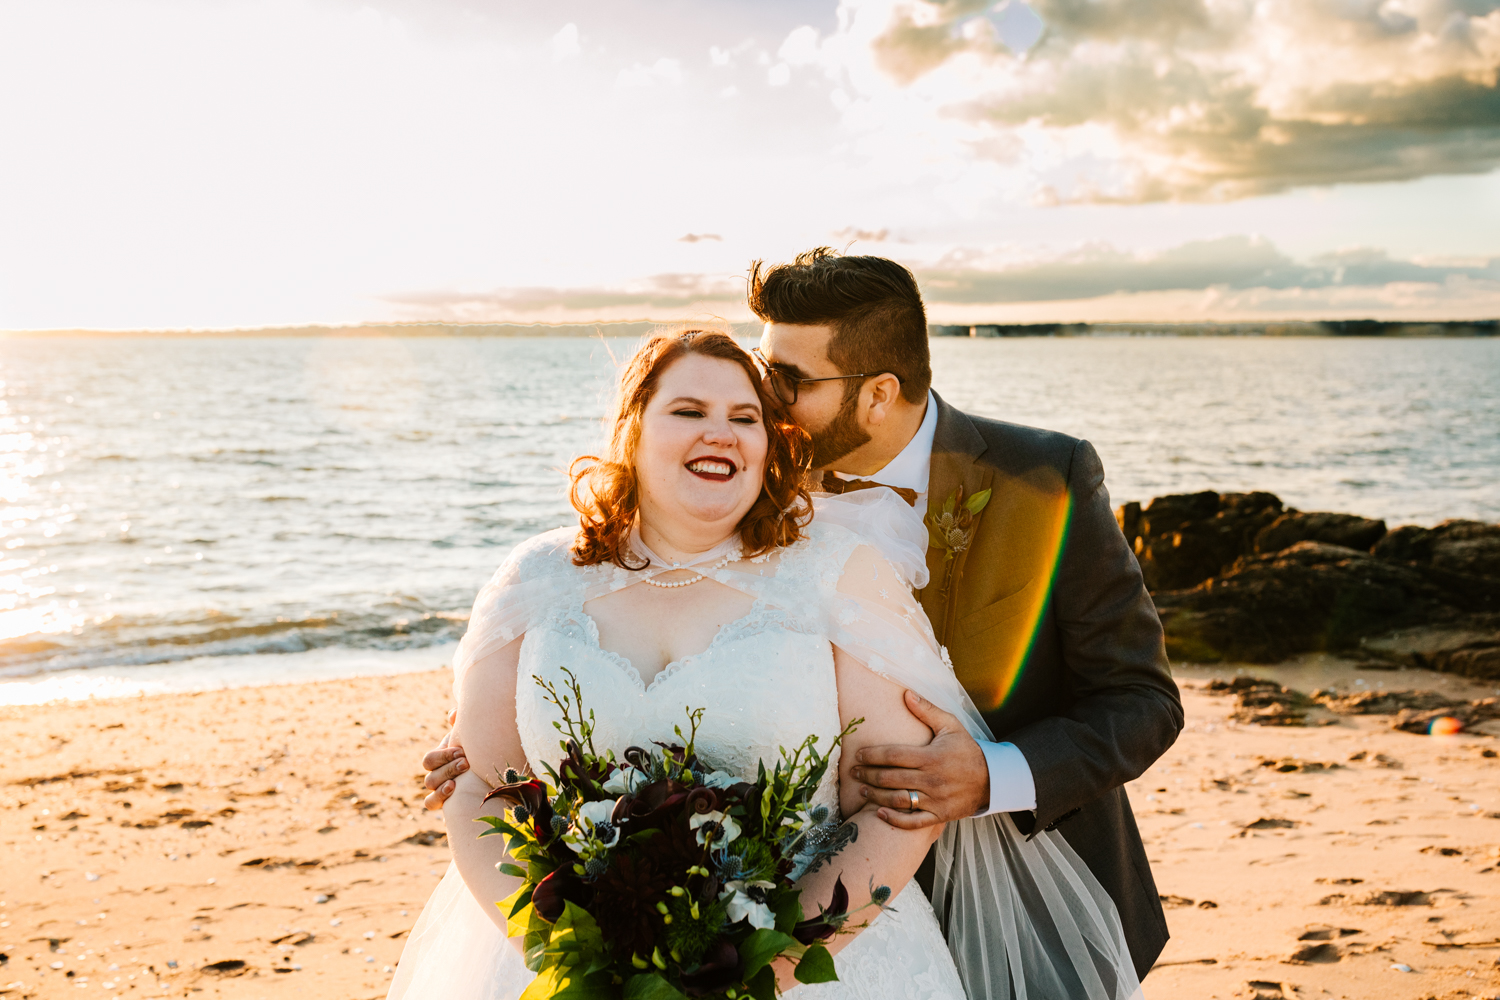 Red haired bride holding bouquet kissed by groom on beach